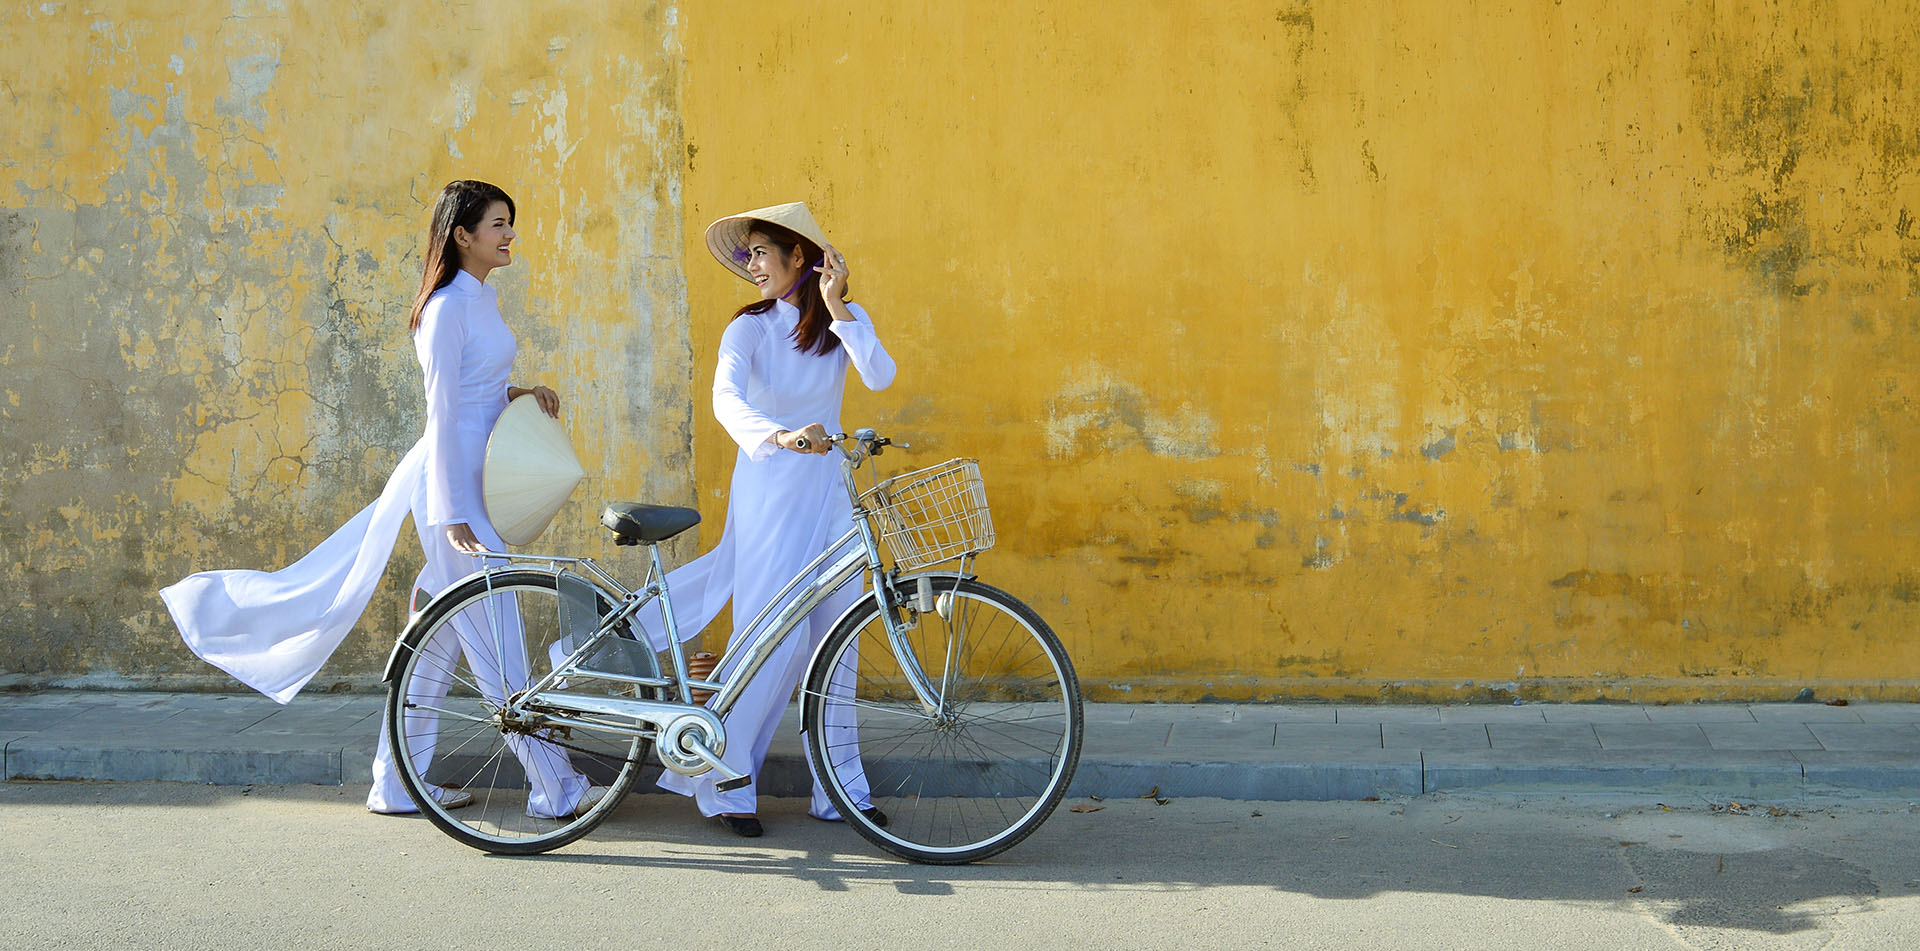 Women in Vietnam Walking with a Bike